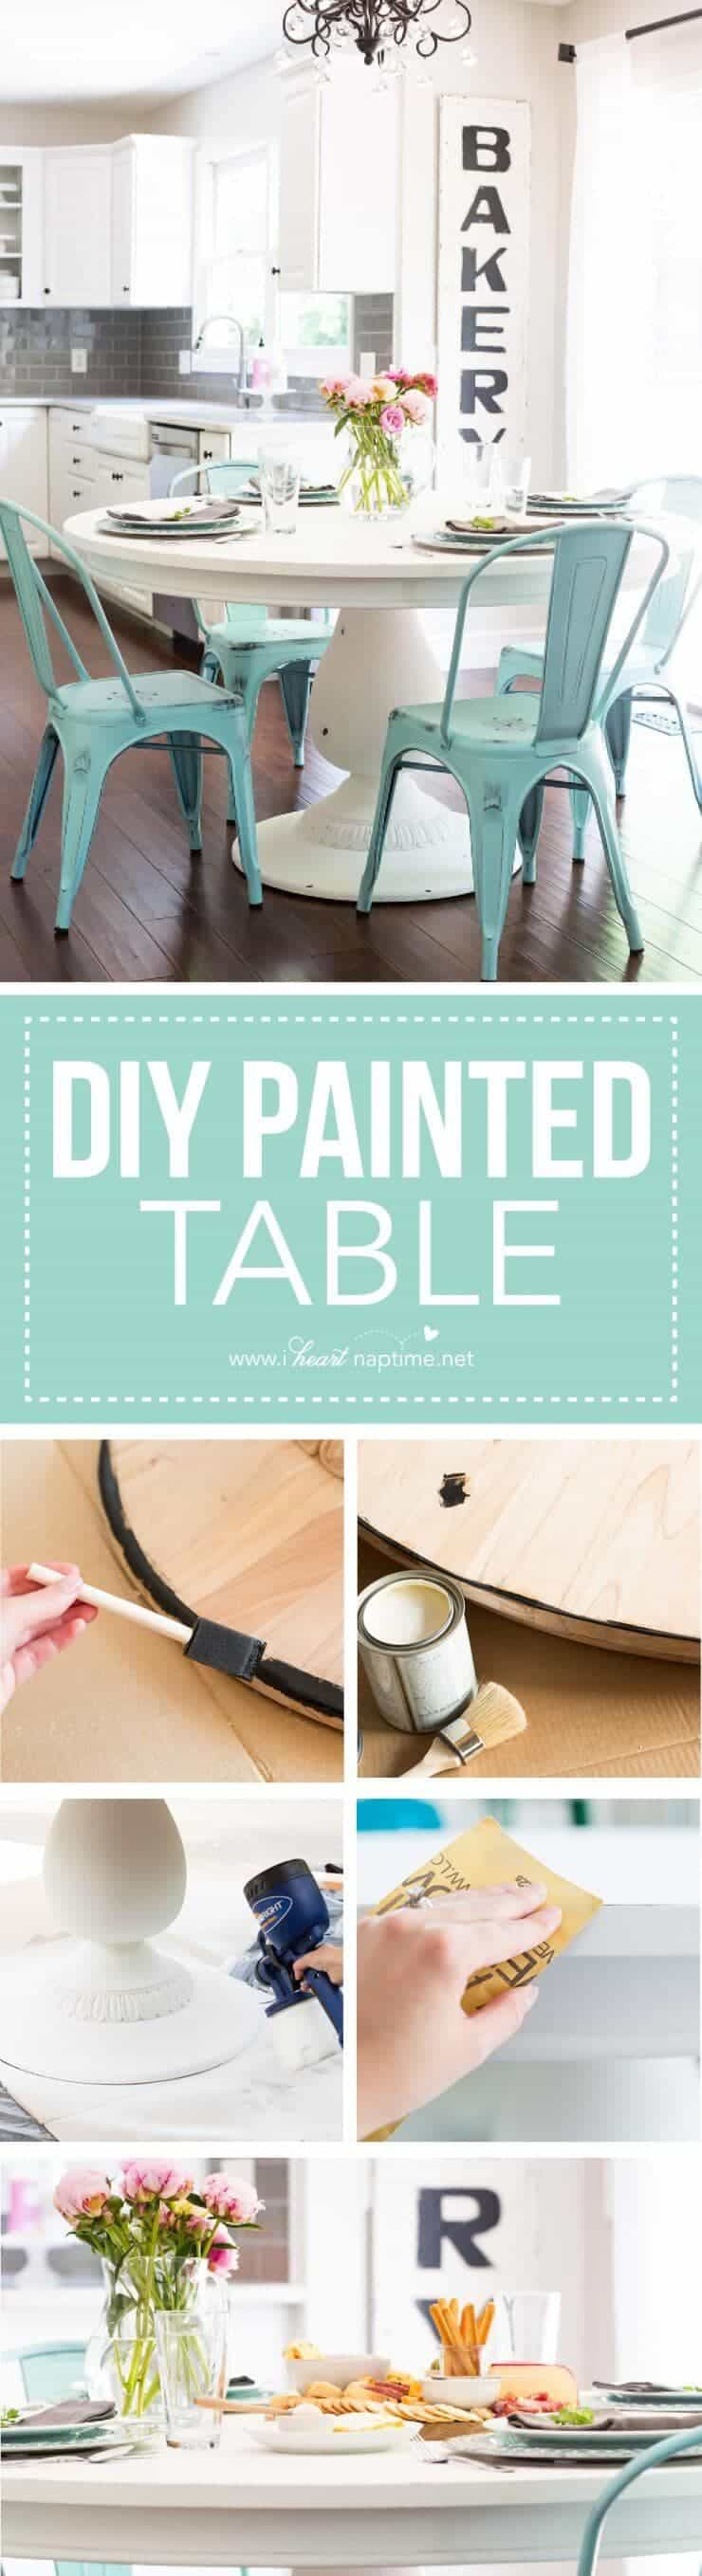 DIY Painted Table & Distressing Technique!